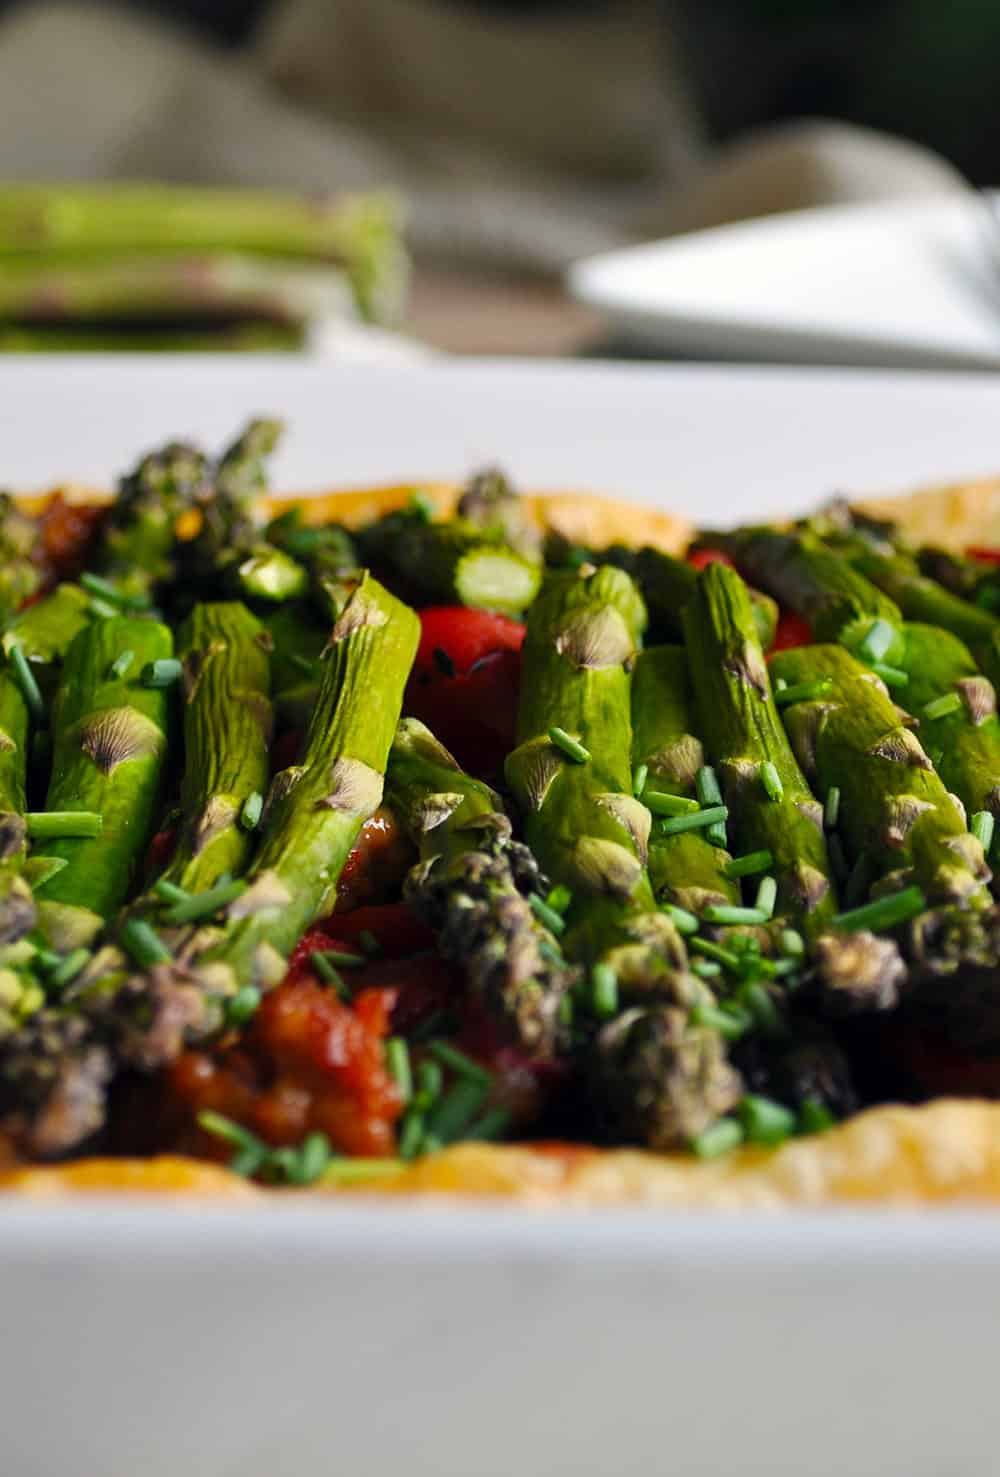 Savory Tart Recipe with Sausage and Vegetables | ofbatteranddough.com